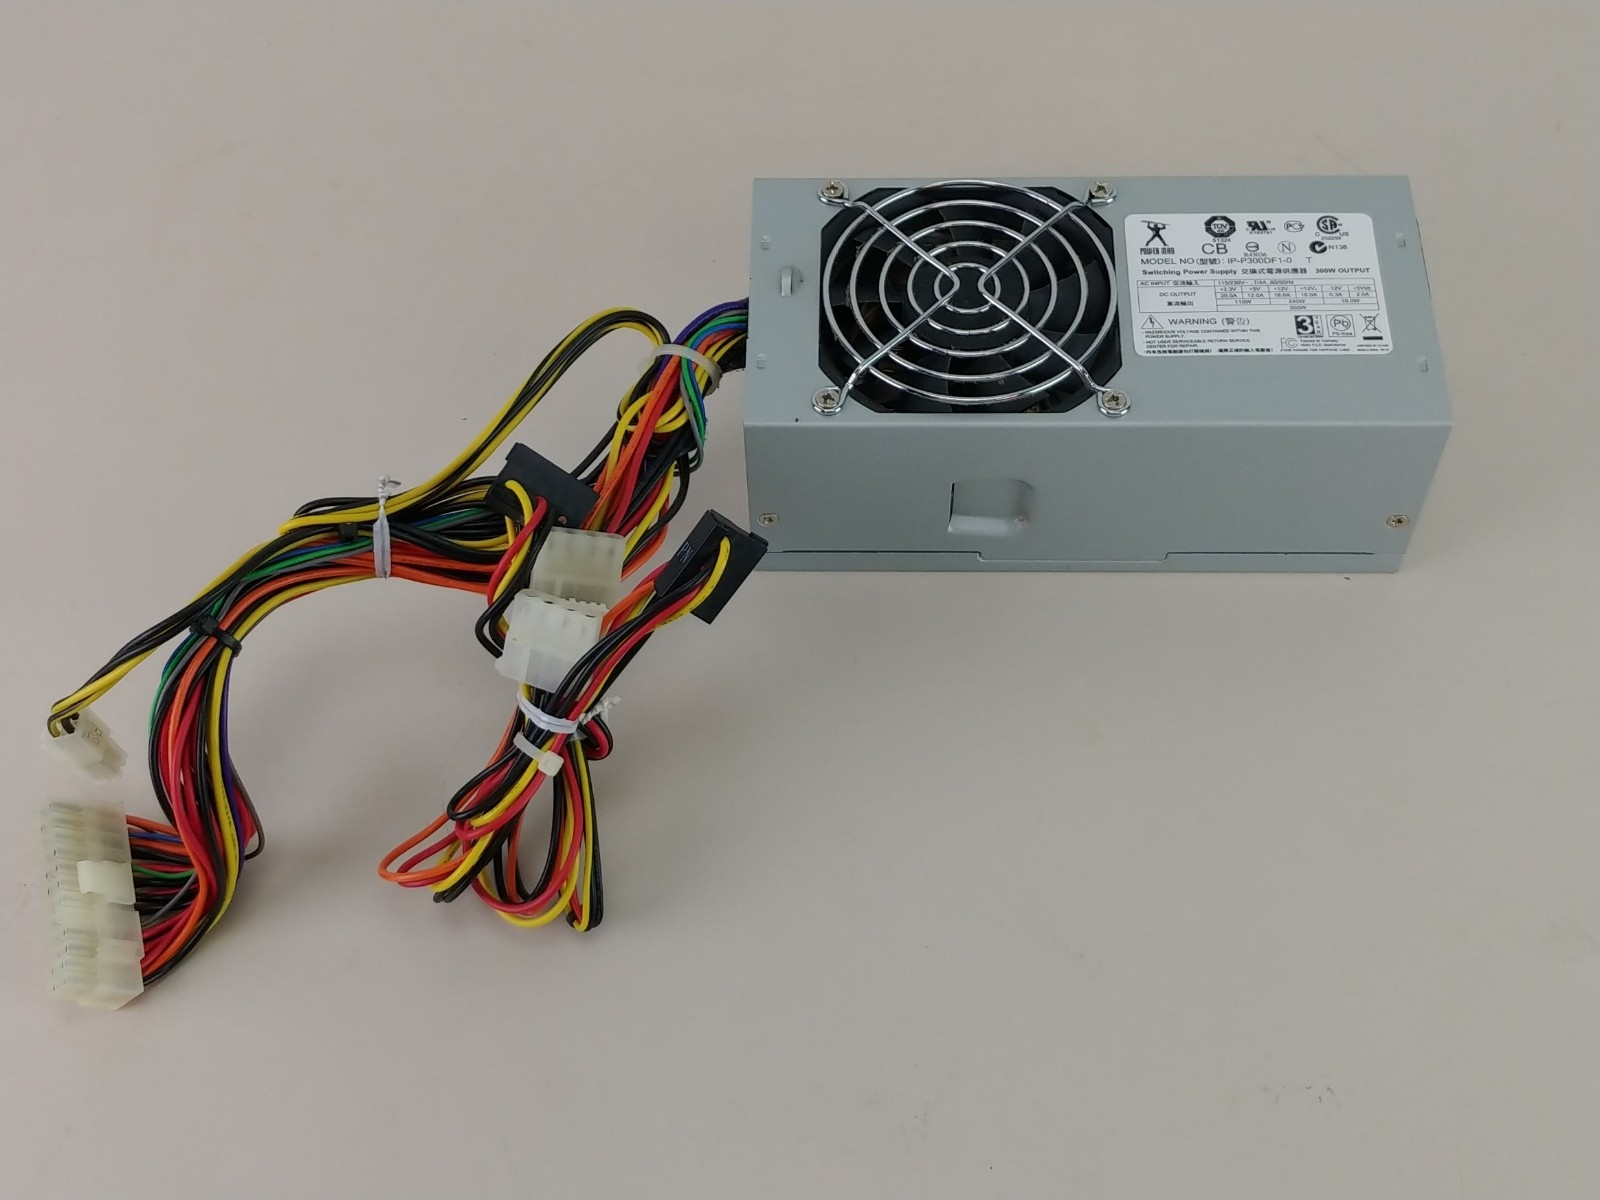 Powerman IP-P300DF1-0 300 Watt TFX Power Supply